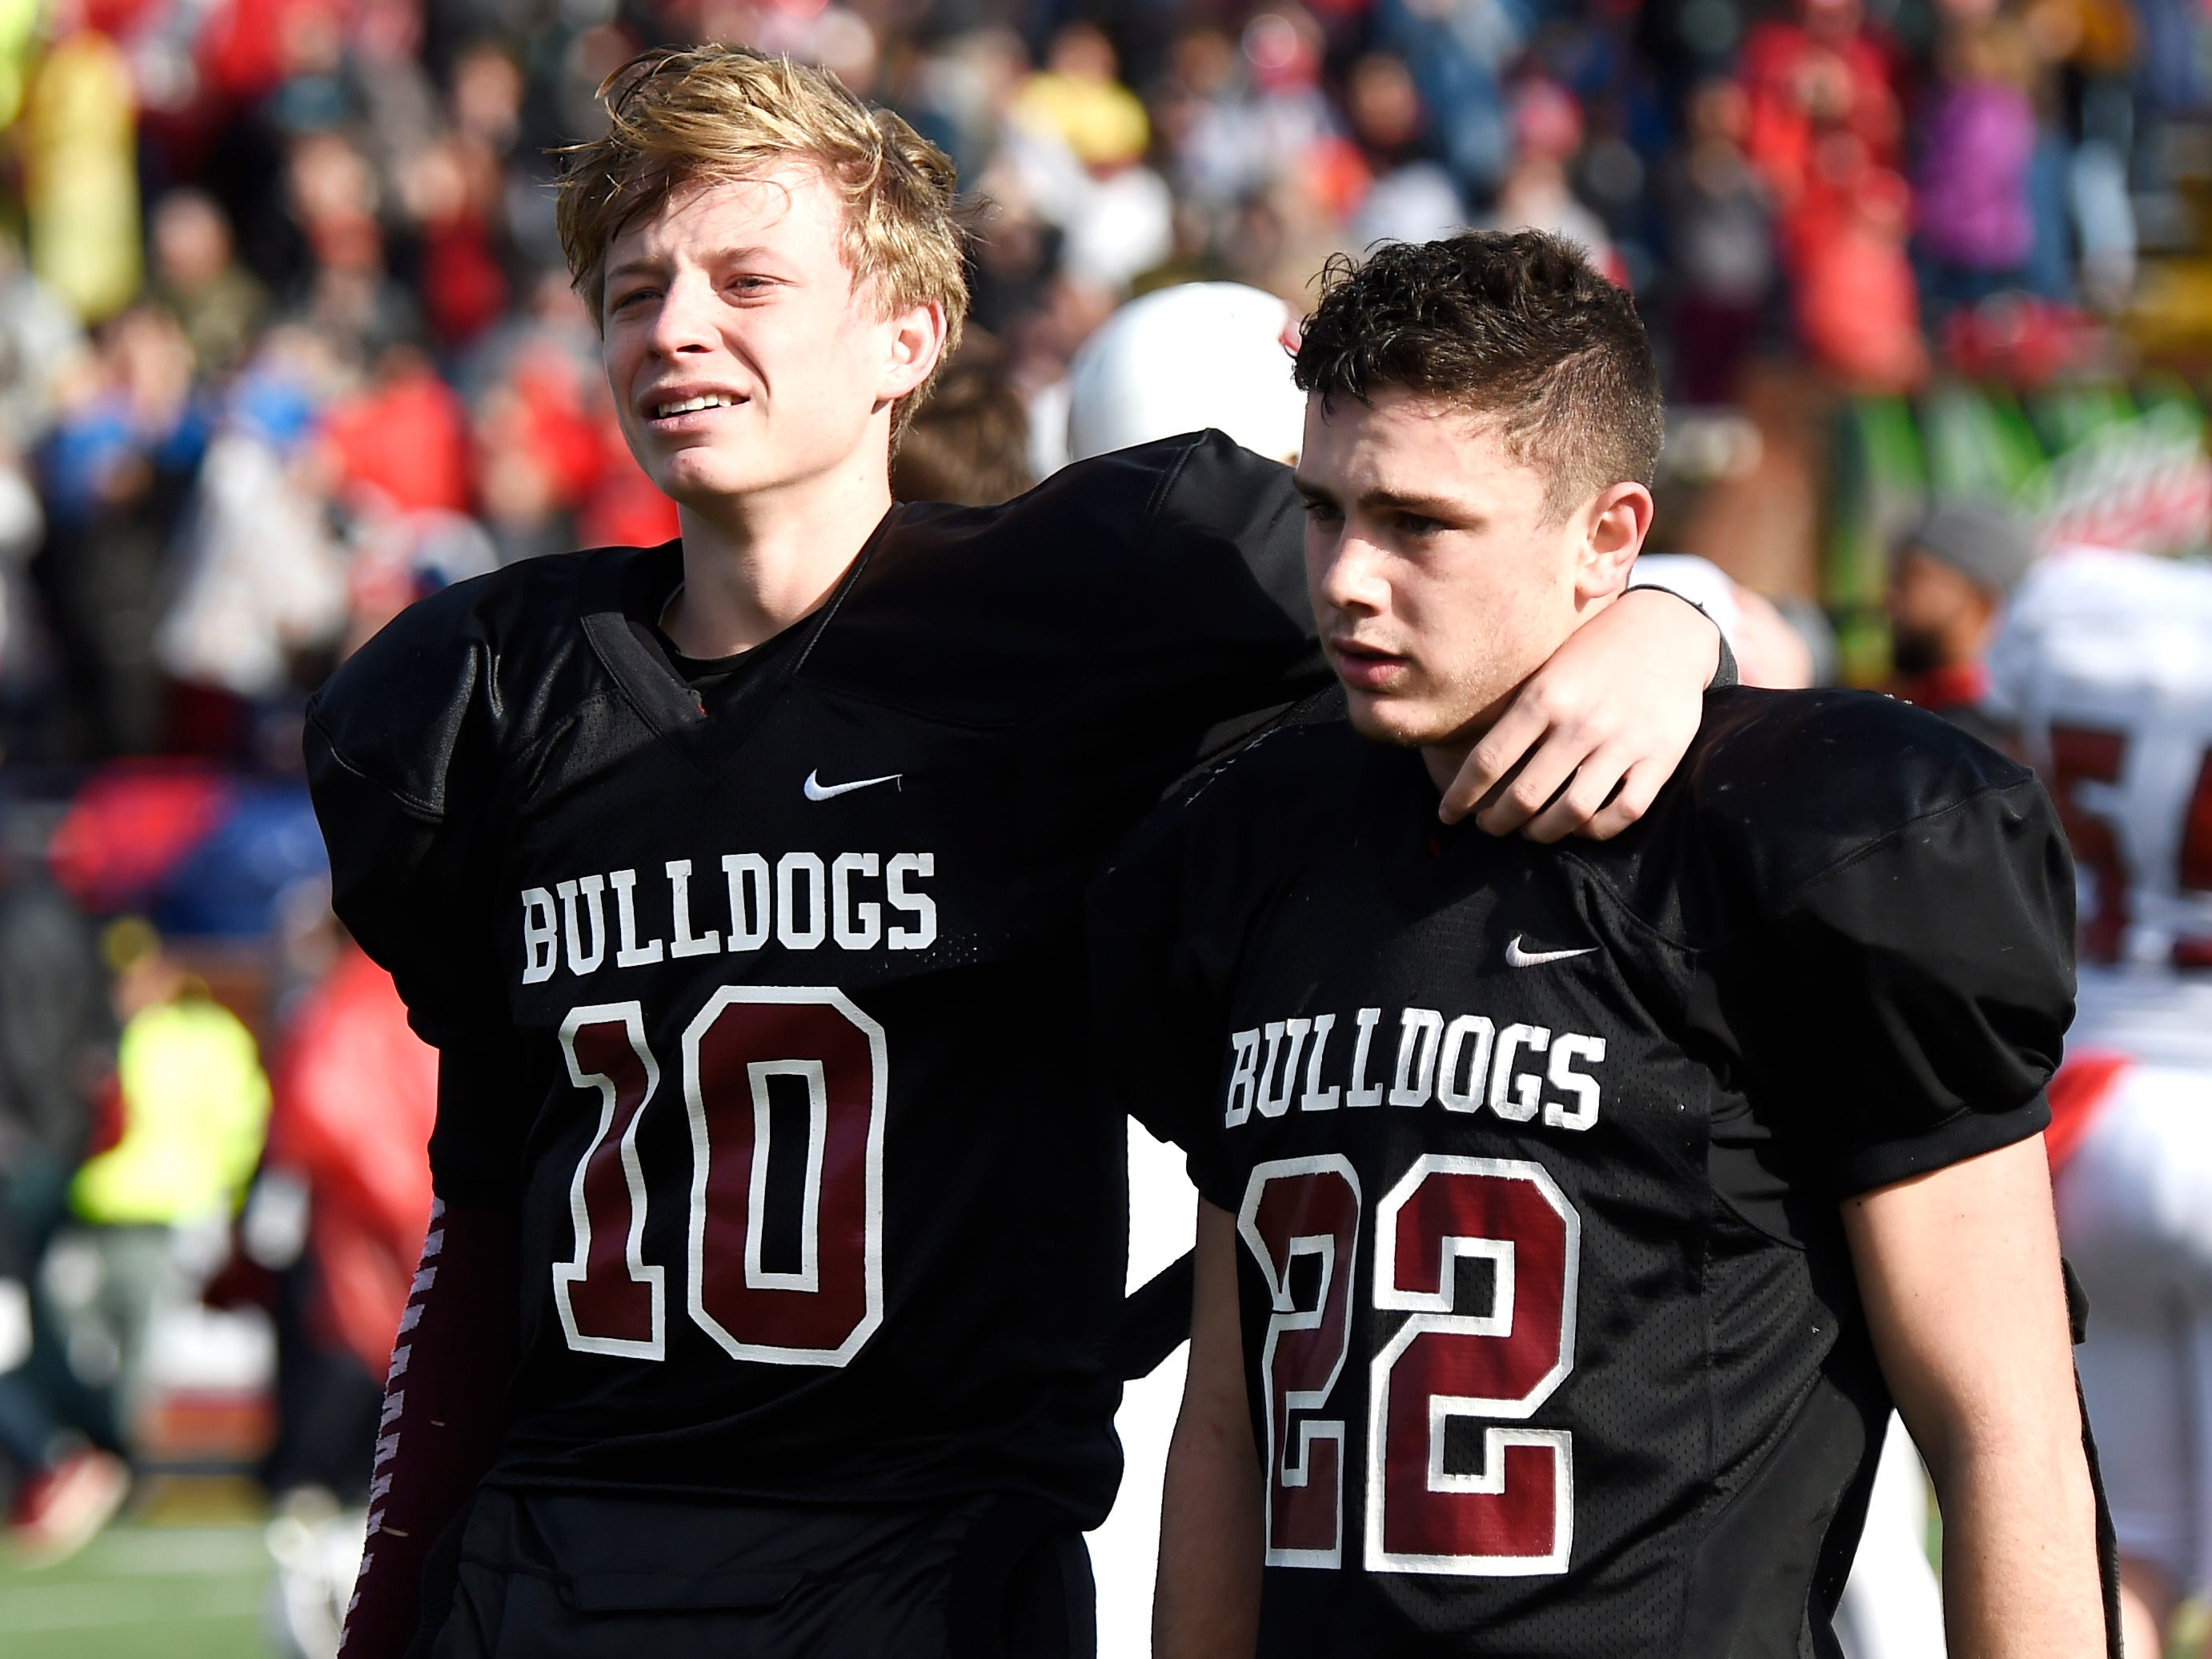 Cornersville's Henlee Mitchell (10) and Eli Woodard (22) react to the team's 7-6 loss to Whitwell in the Class I-A BlueCross Bowl state championship at Tennessee Tech's Tucker Stadium in Cookeville, Tenn., on Saturday, Dec. 1, 2018.